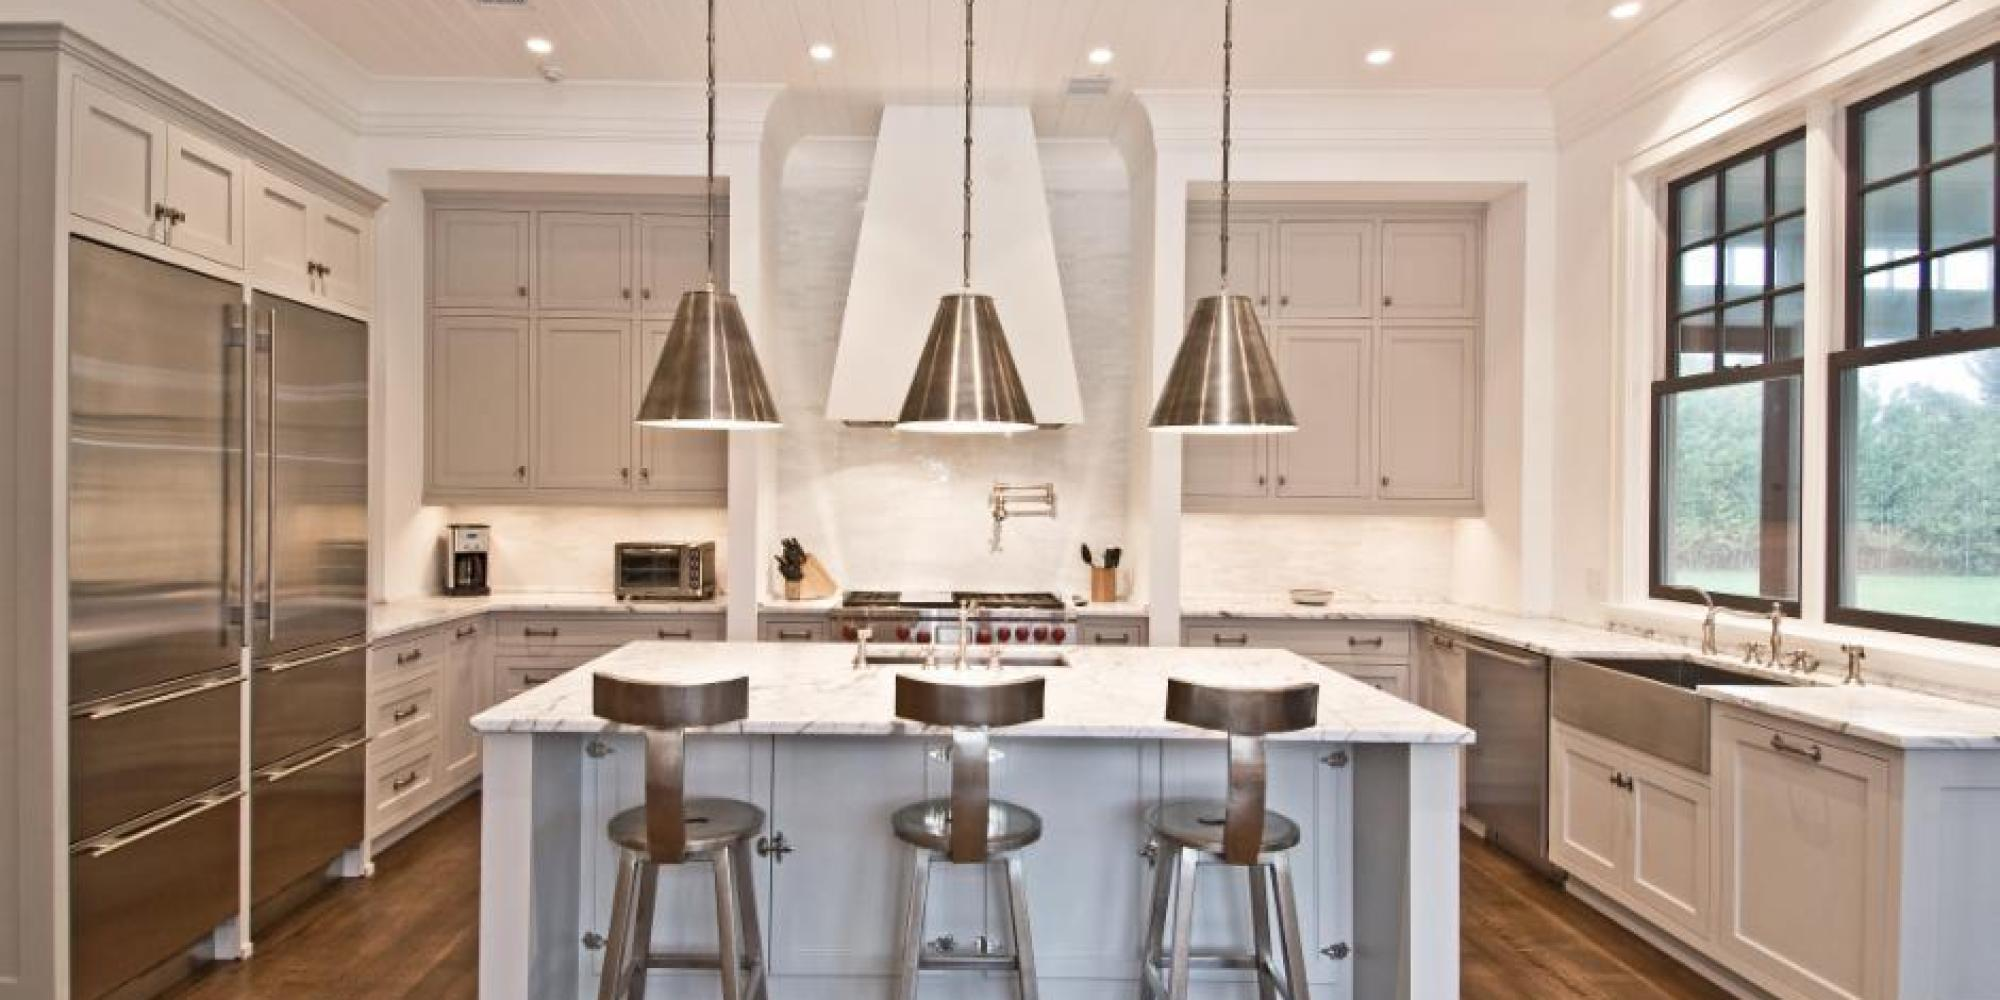 The Best Paint Colors For Every Type Of Kitchen HuffPost - Light colors for kitchen walls